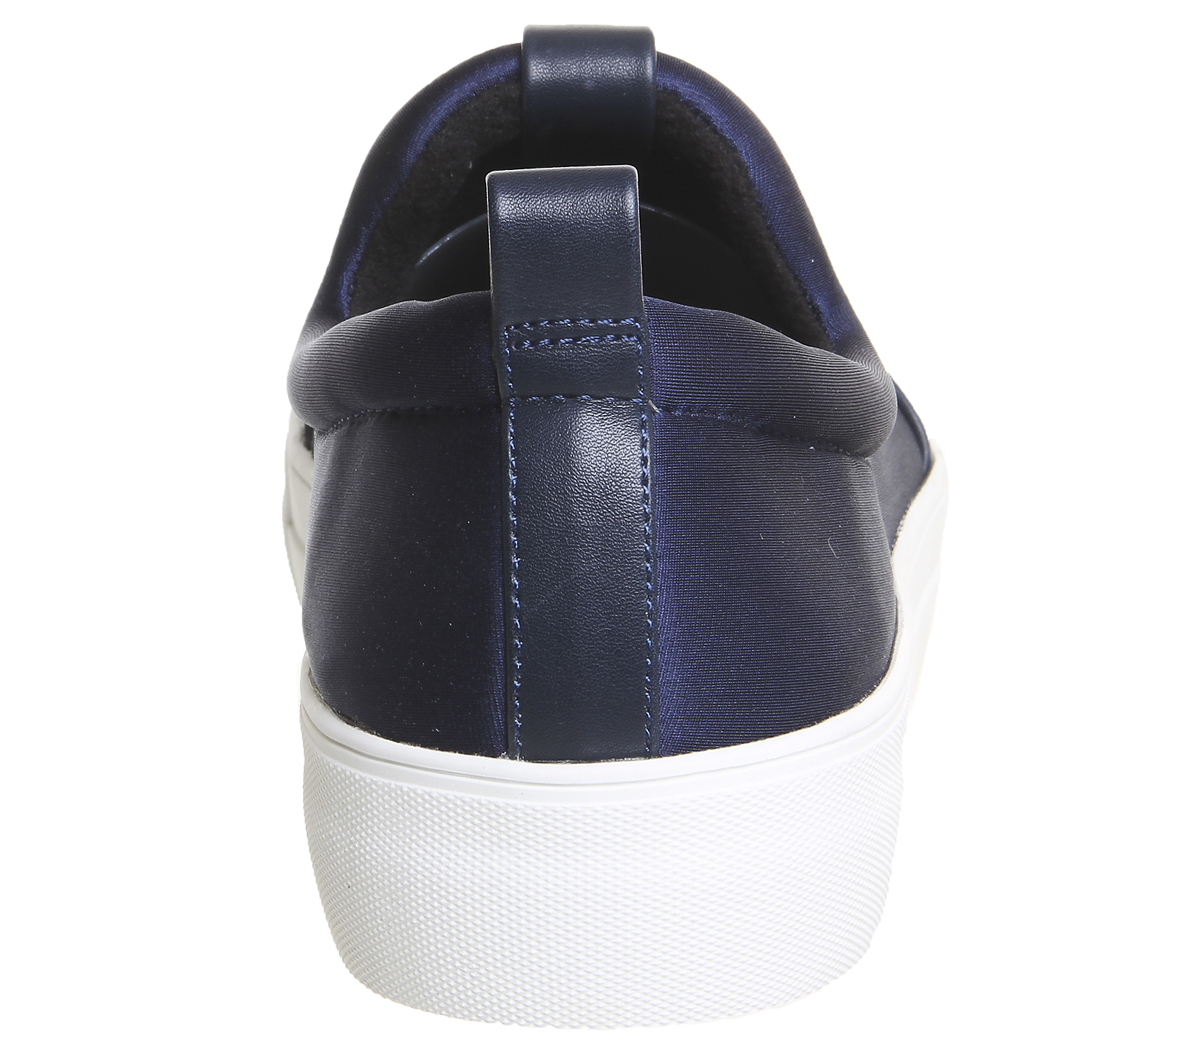 Womens Office Clash Jewel Toe Cap Slip On Navy Flats